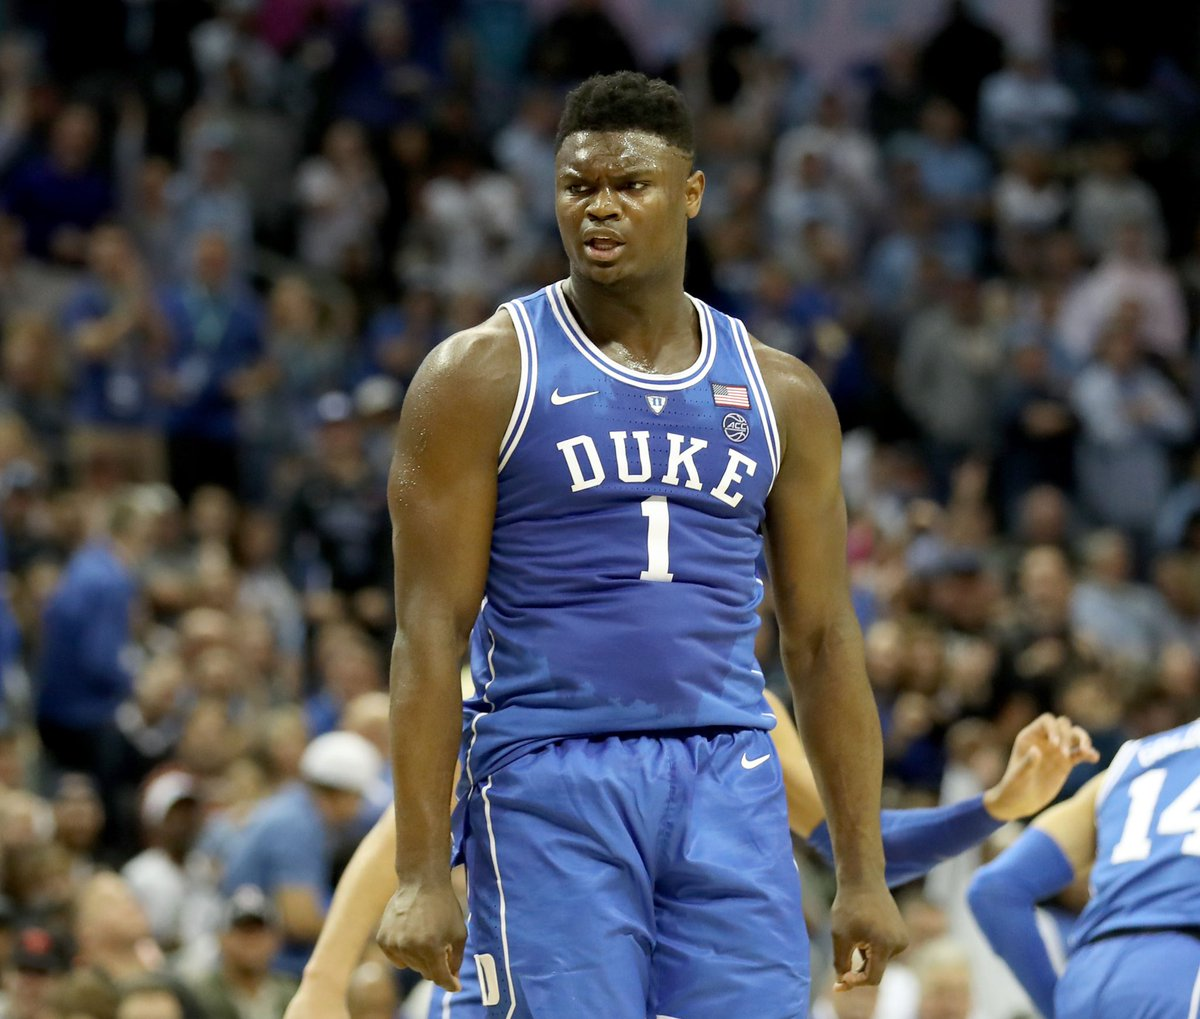 Complex Sports's photo on Zion Williamson